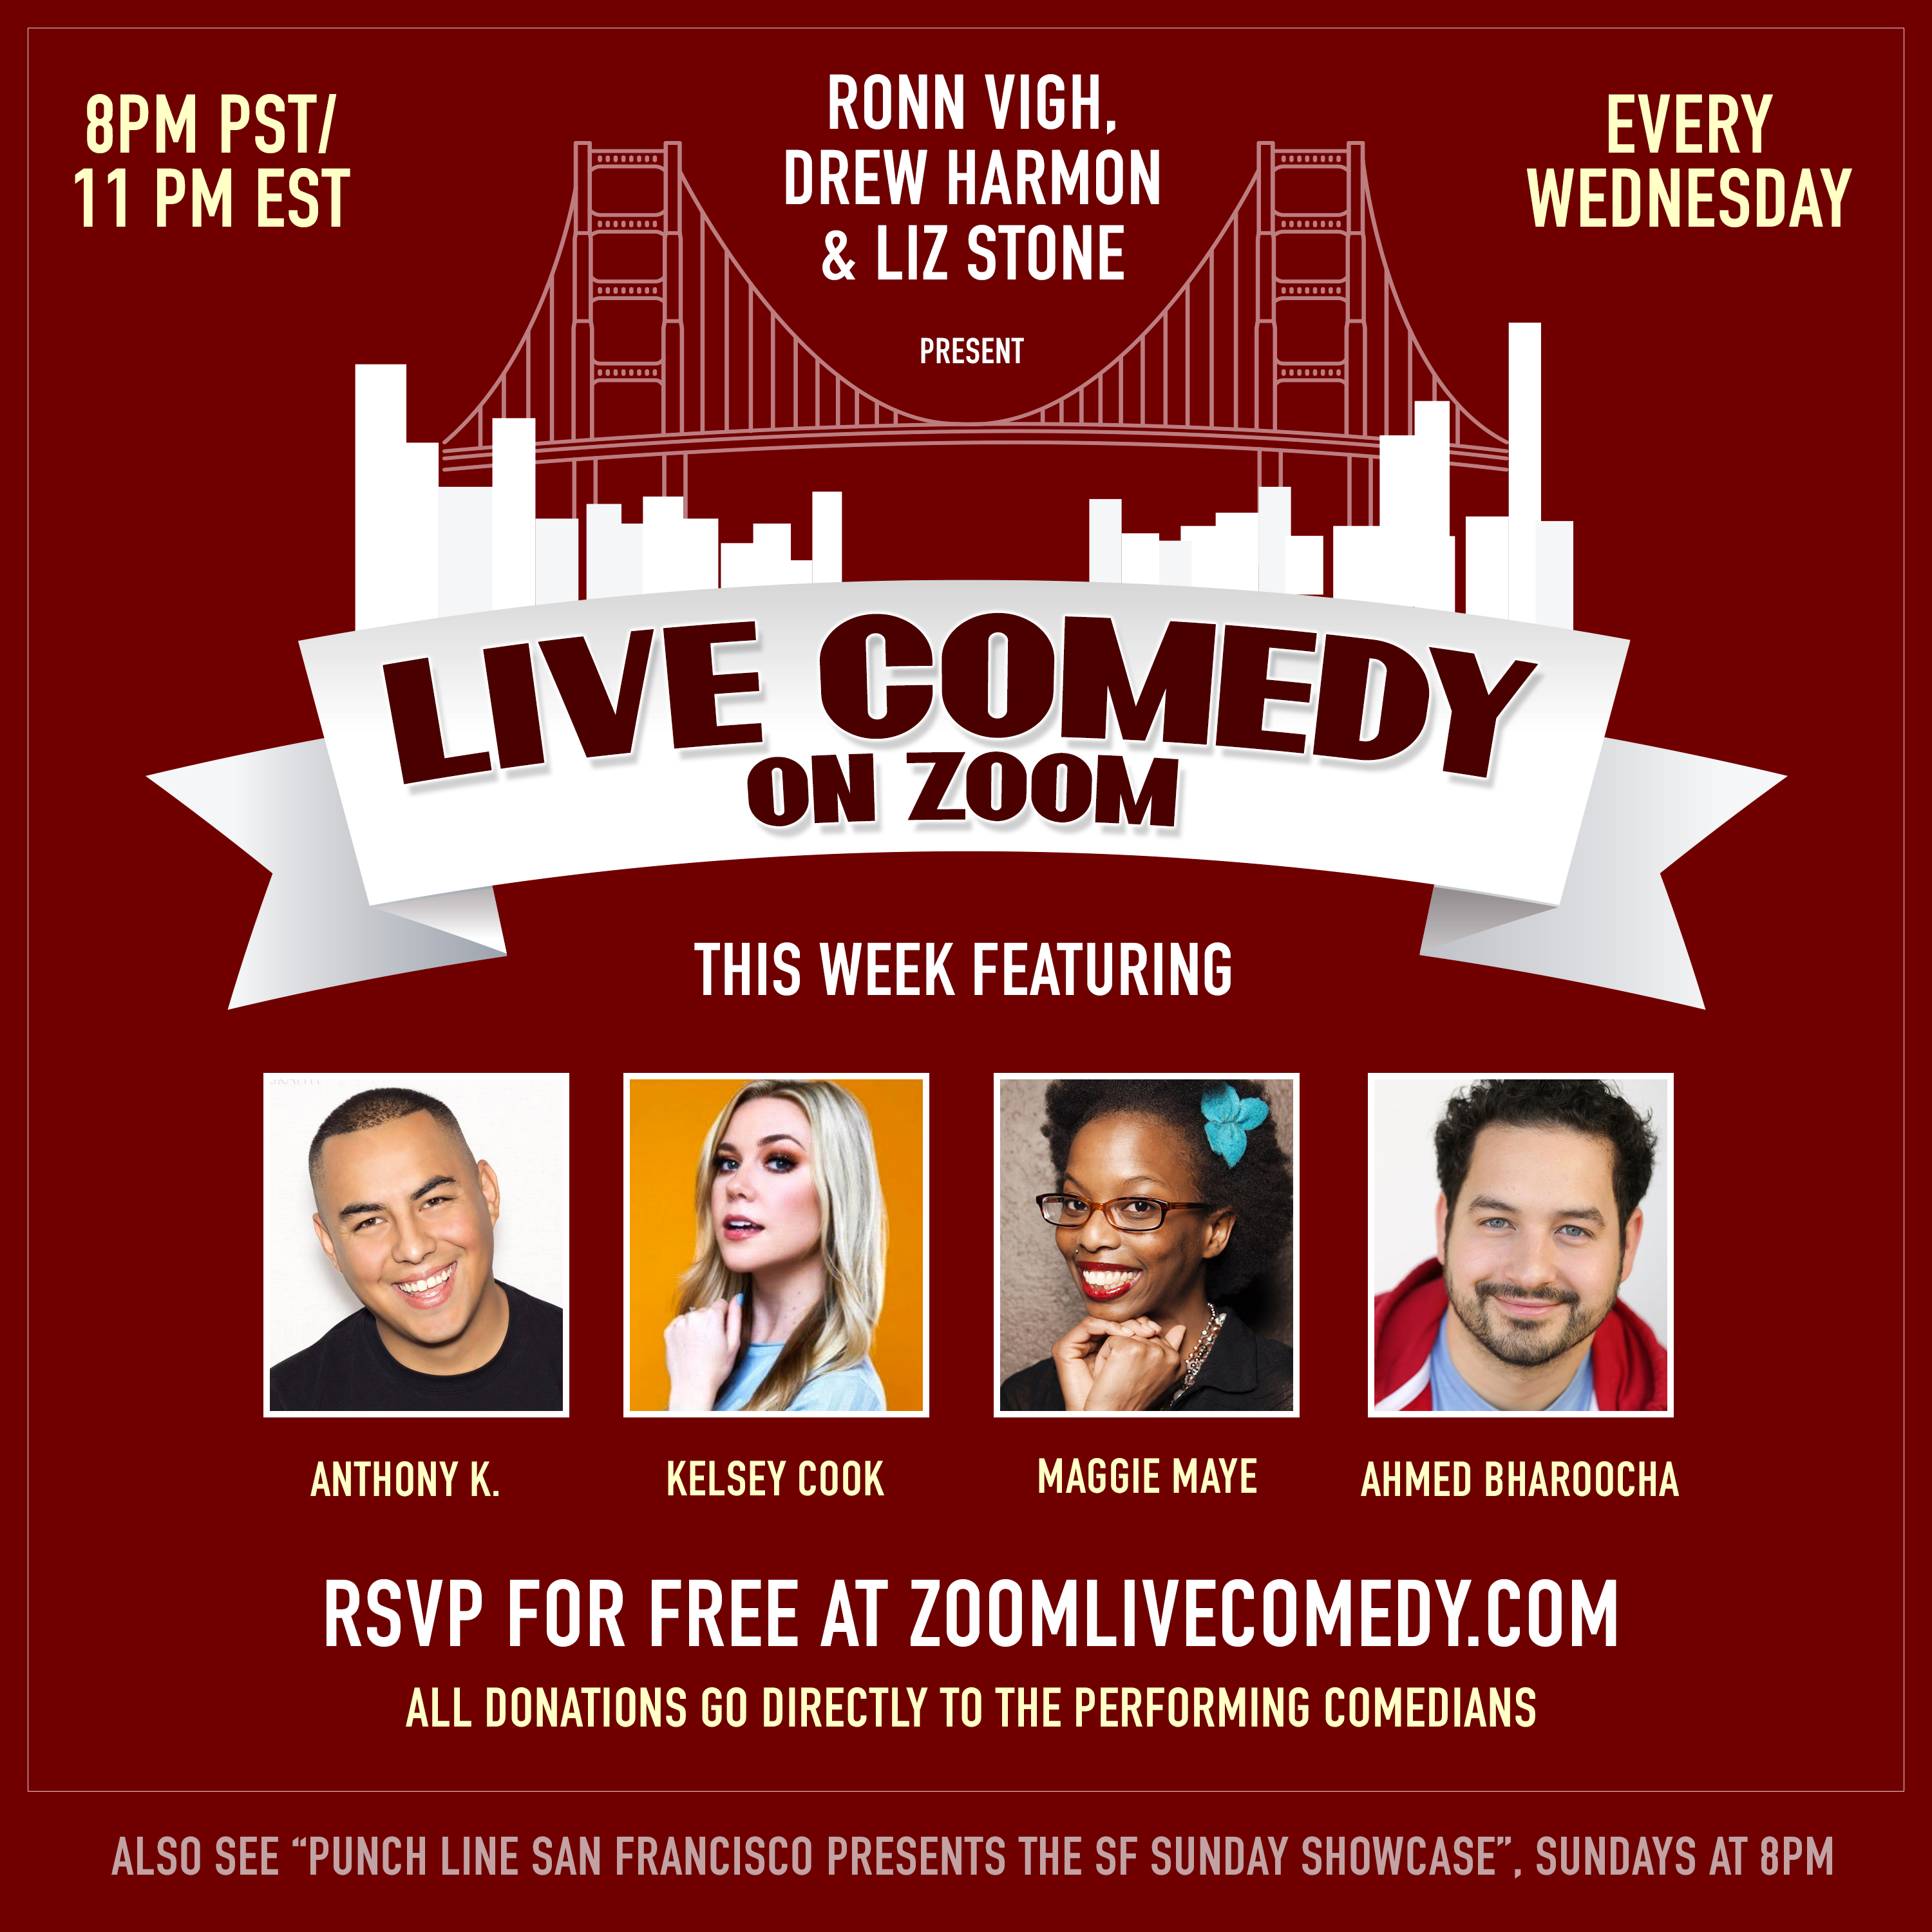 livecomedy-ronndrewliz-poster-maroon-FINAL-4